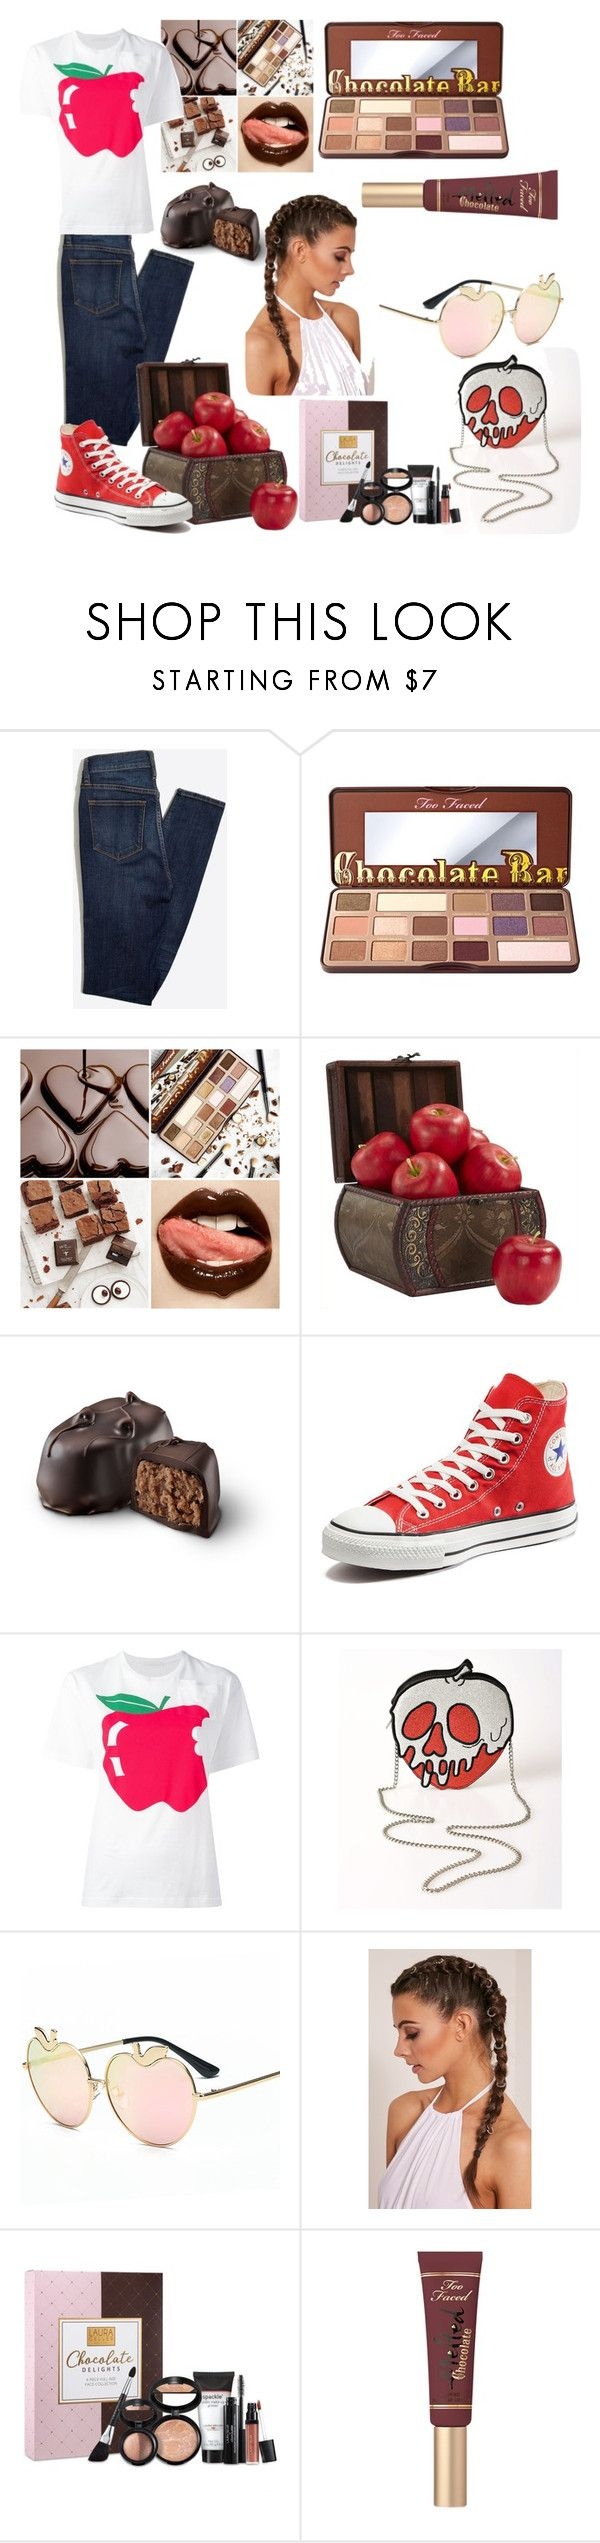 """""""Chocolate 🍫 and apples🍎"""" by audreybrookezaring ❤ liked on Polyvore featuring Too Faced Cosmetics, Nearly Natural, Converse, Peter Jensen, Danielle Nicole and Laura Geller"""